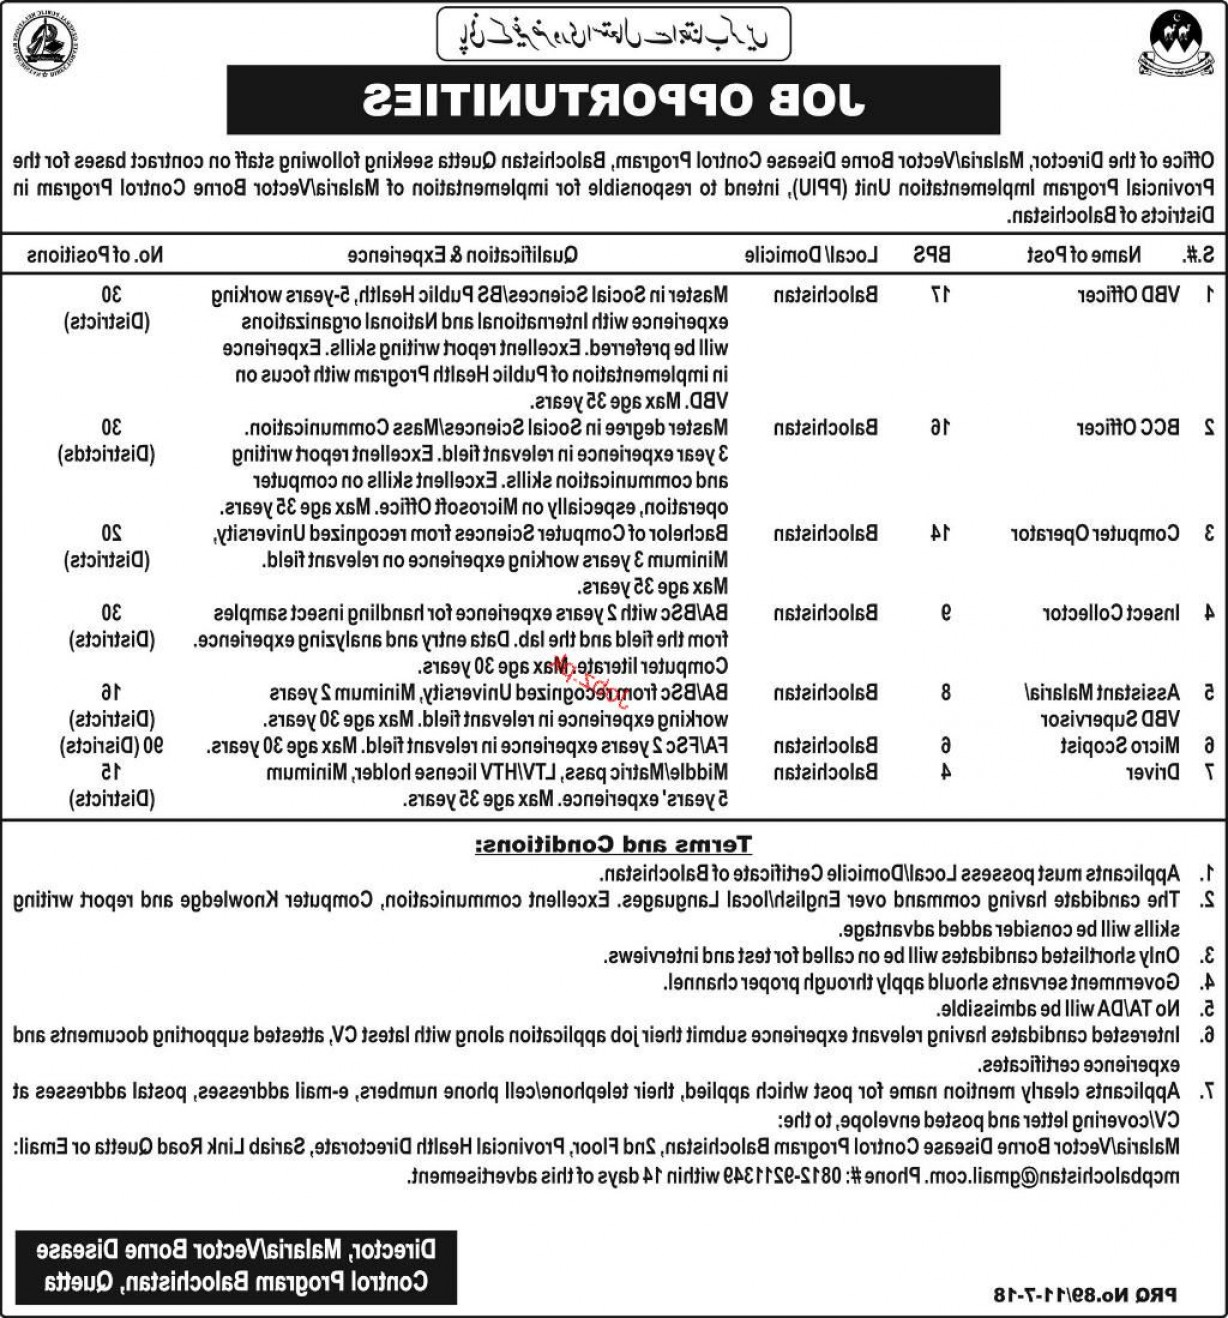 Vector Job Opportunities: Malaria Vector Borne Disease Control Program Balochistanjobs